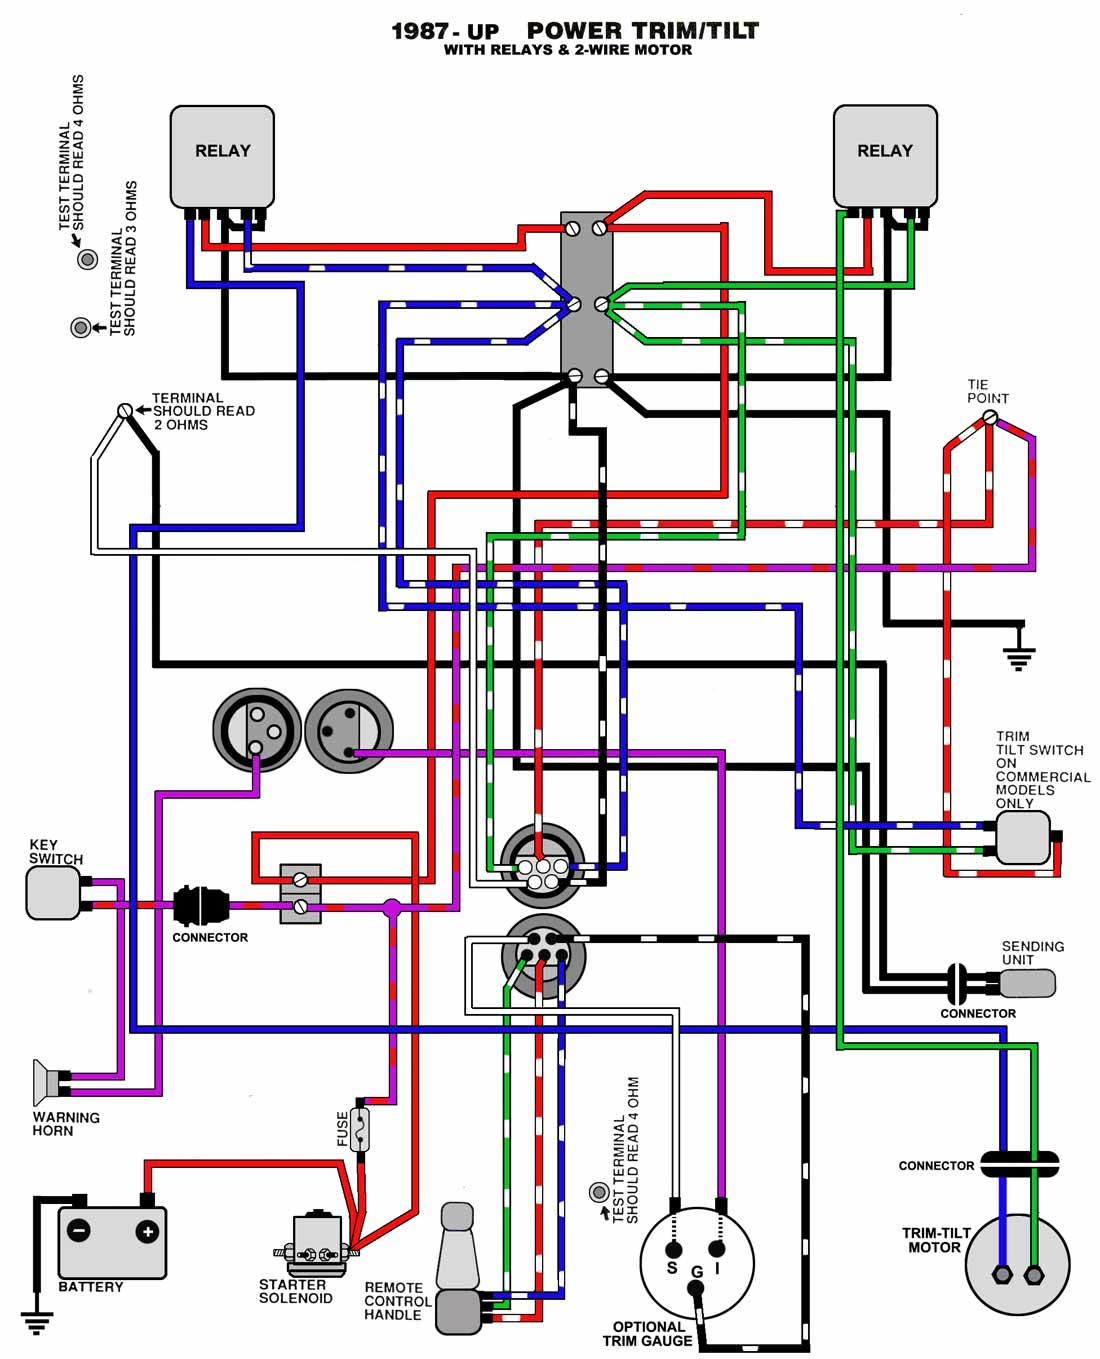 TnT_87_UP mastertech marine evinrude johnson outboard wiring diagrams Boat Ignition Switch Wiring Diagram at highcare.asia